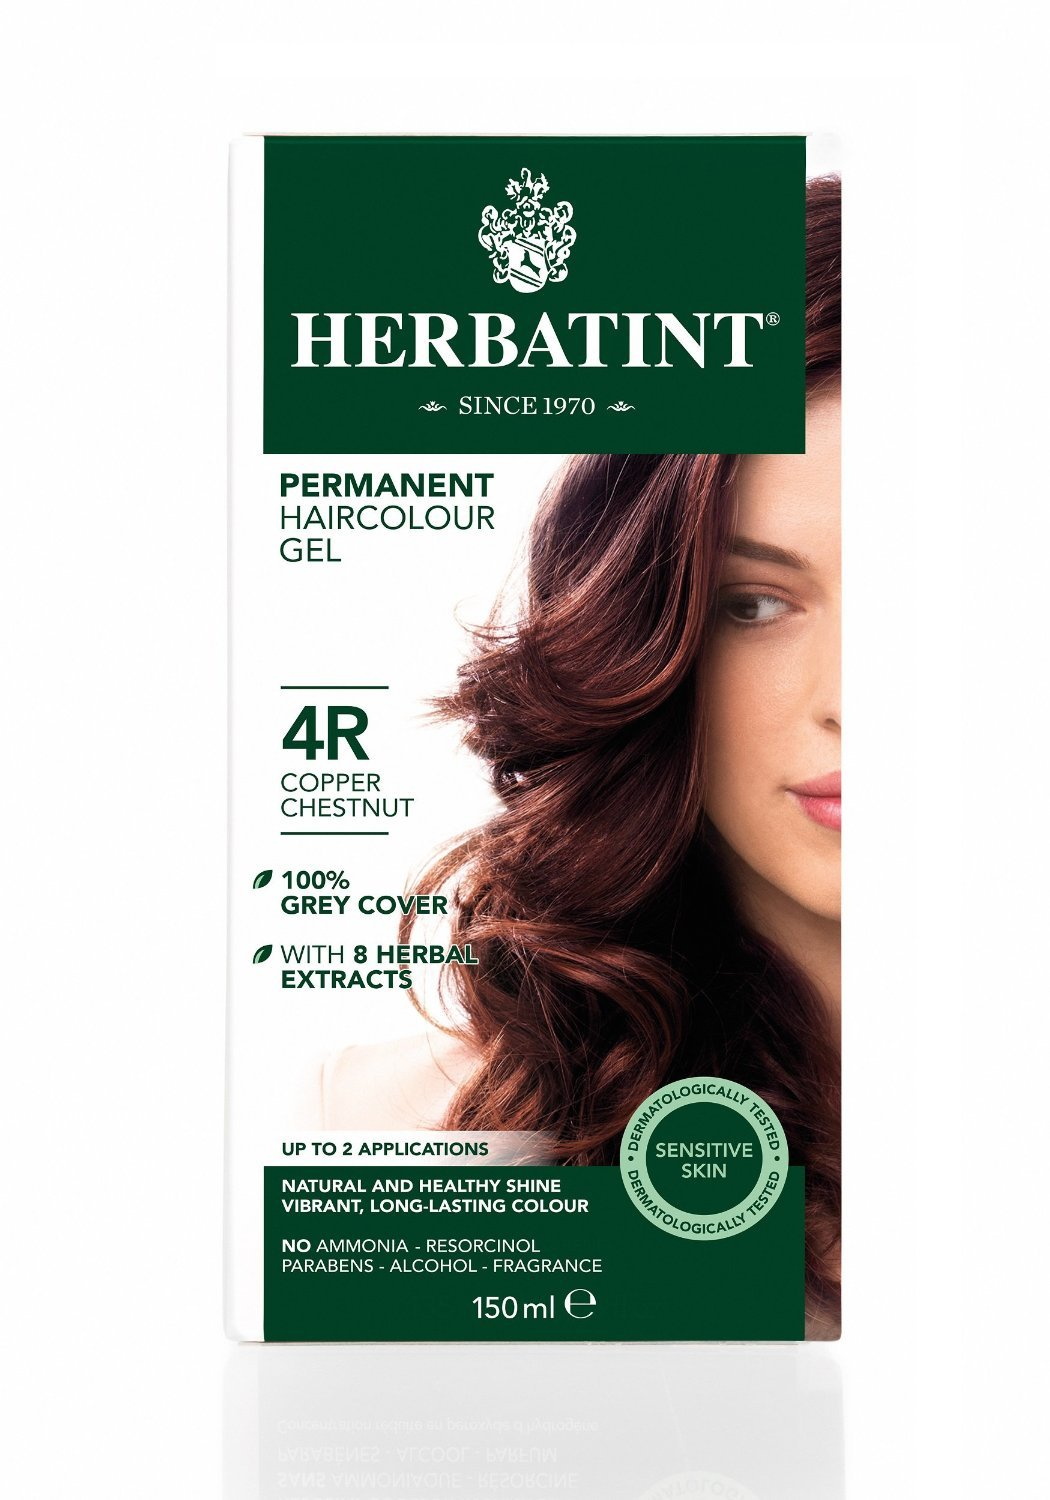 Herbatint 4R Permanent Herbal Copper Spring new work one after another Haircolor Chestnut Gel 4 years warranty Kit